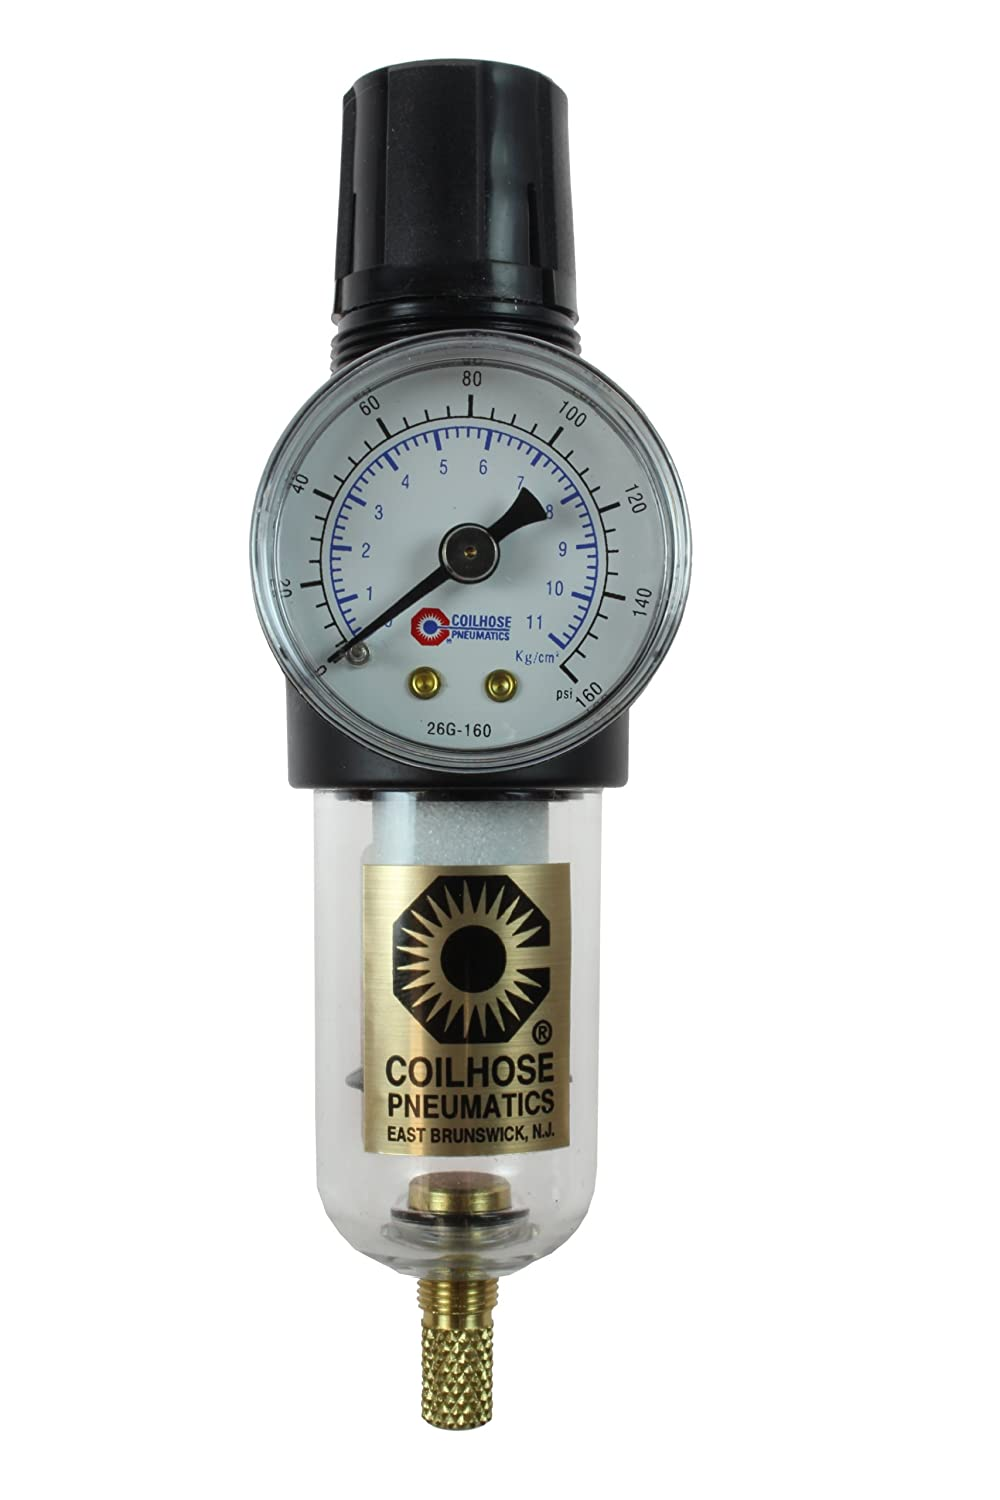 Coilhose Pneumatics MFC2-G Miniature Series Integral Filter Regulator Combo, 1/4-Inch Pipe Size with 0-160 PSI Pressure Gauge